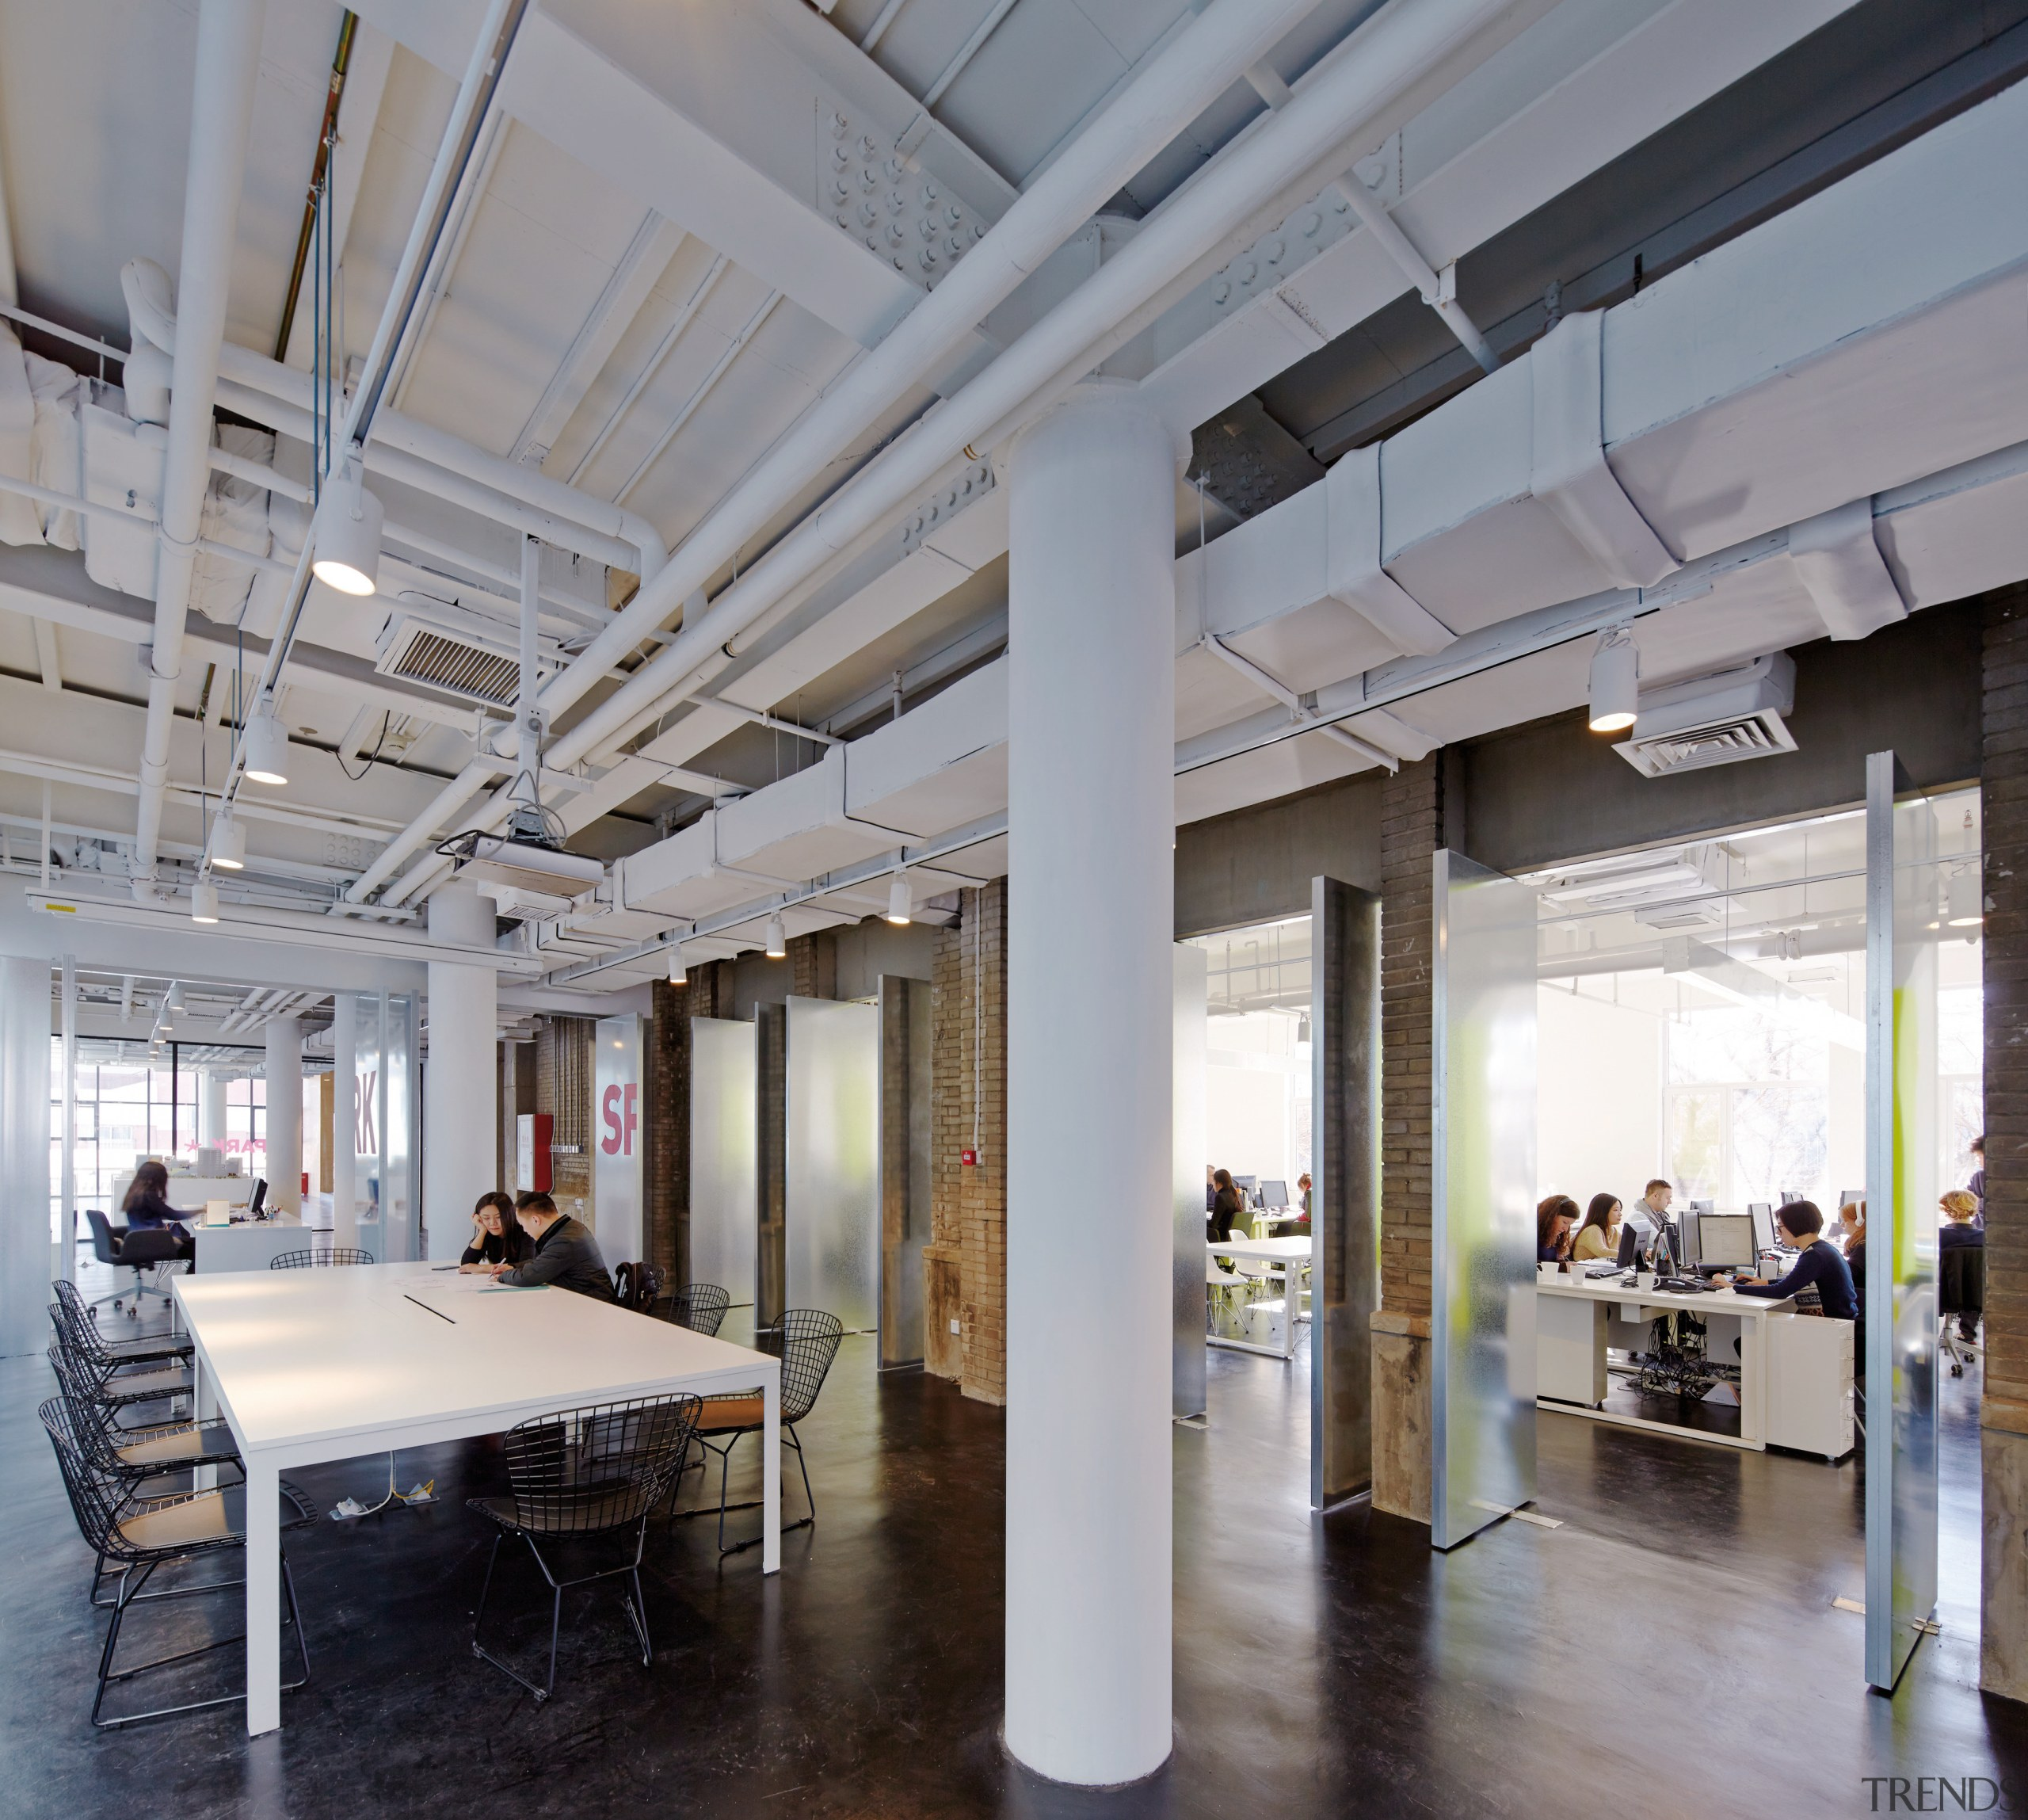 Collaboration is easy in the new Spark Architects ceiling, interior design, lobby, loft, gray